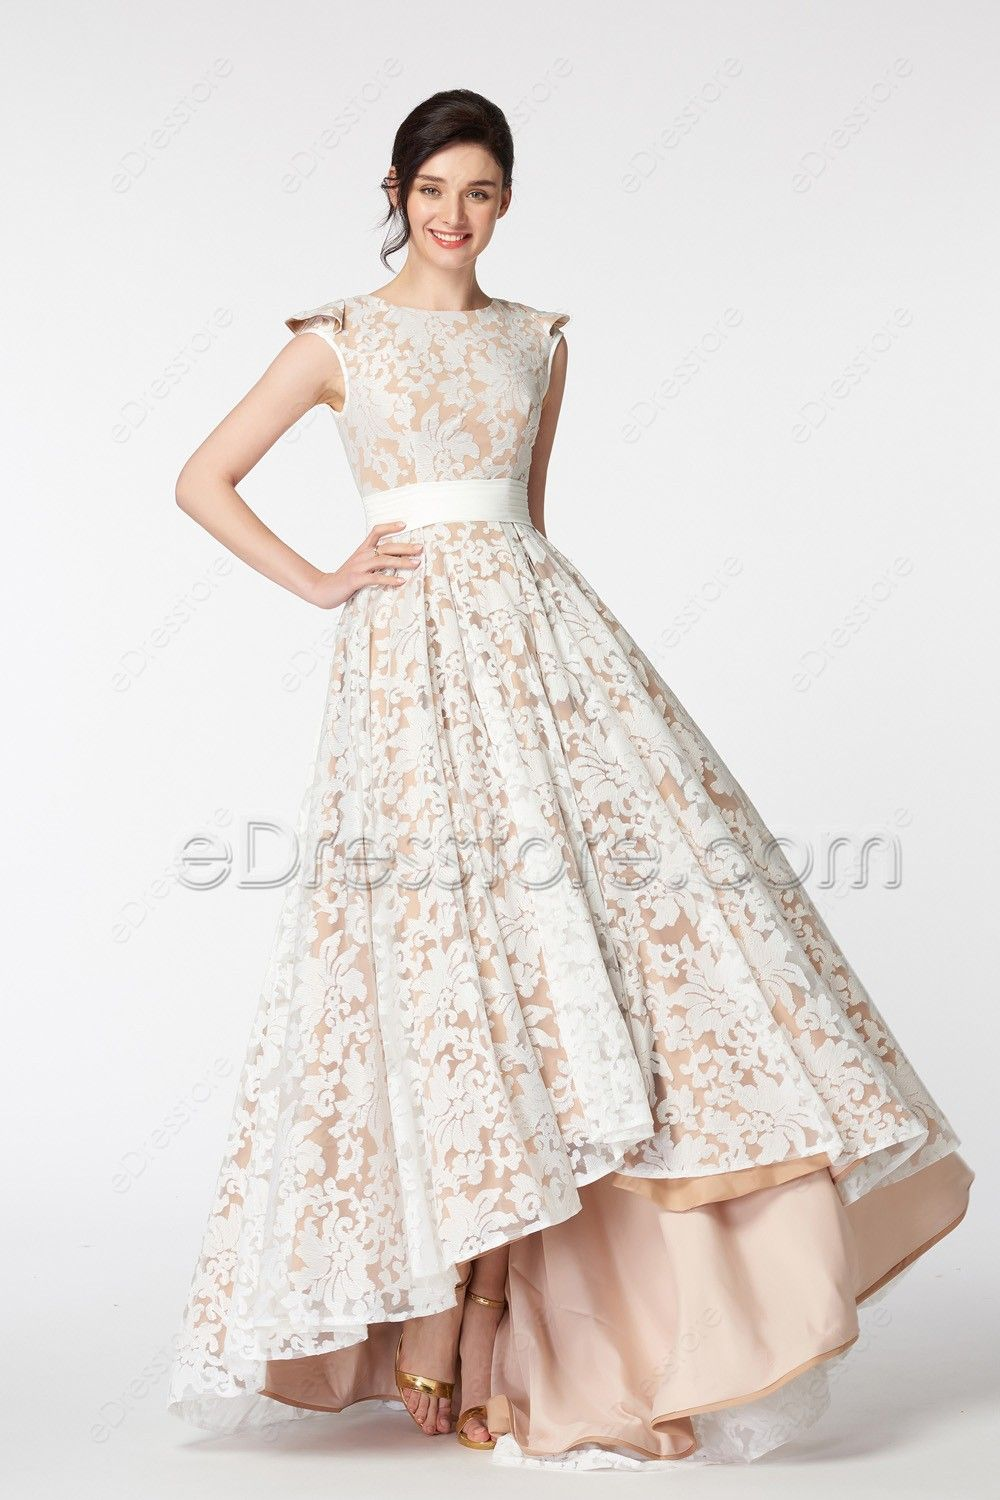 Modest White Lace Champagne High Low Prom Dresses Cap Sleeves in ... f0b40dc84